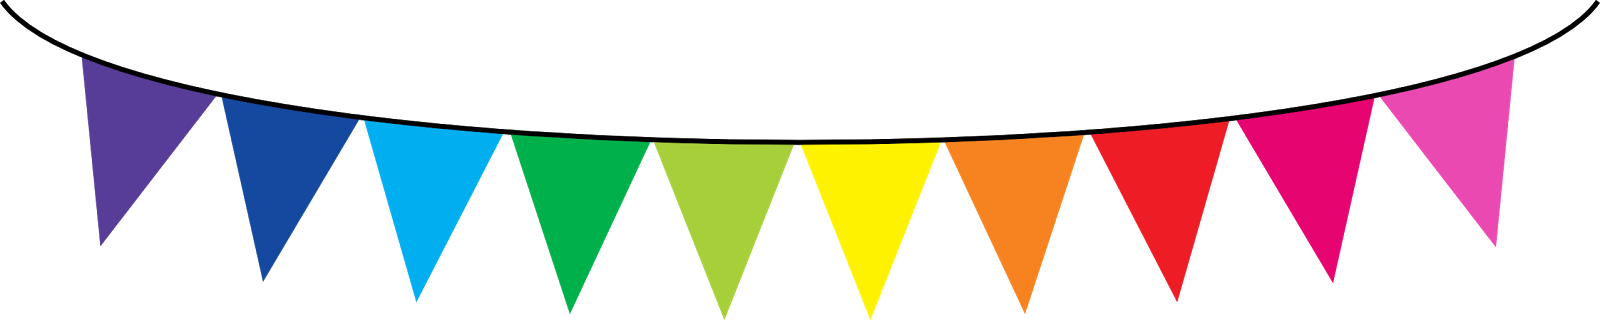 1600x320 Free Yard Sale Clip Art Pictures